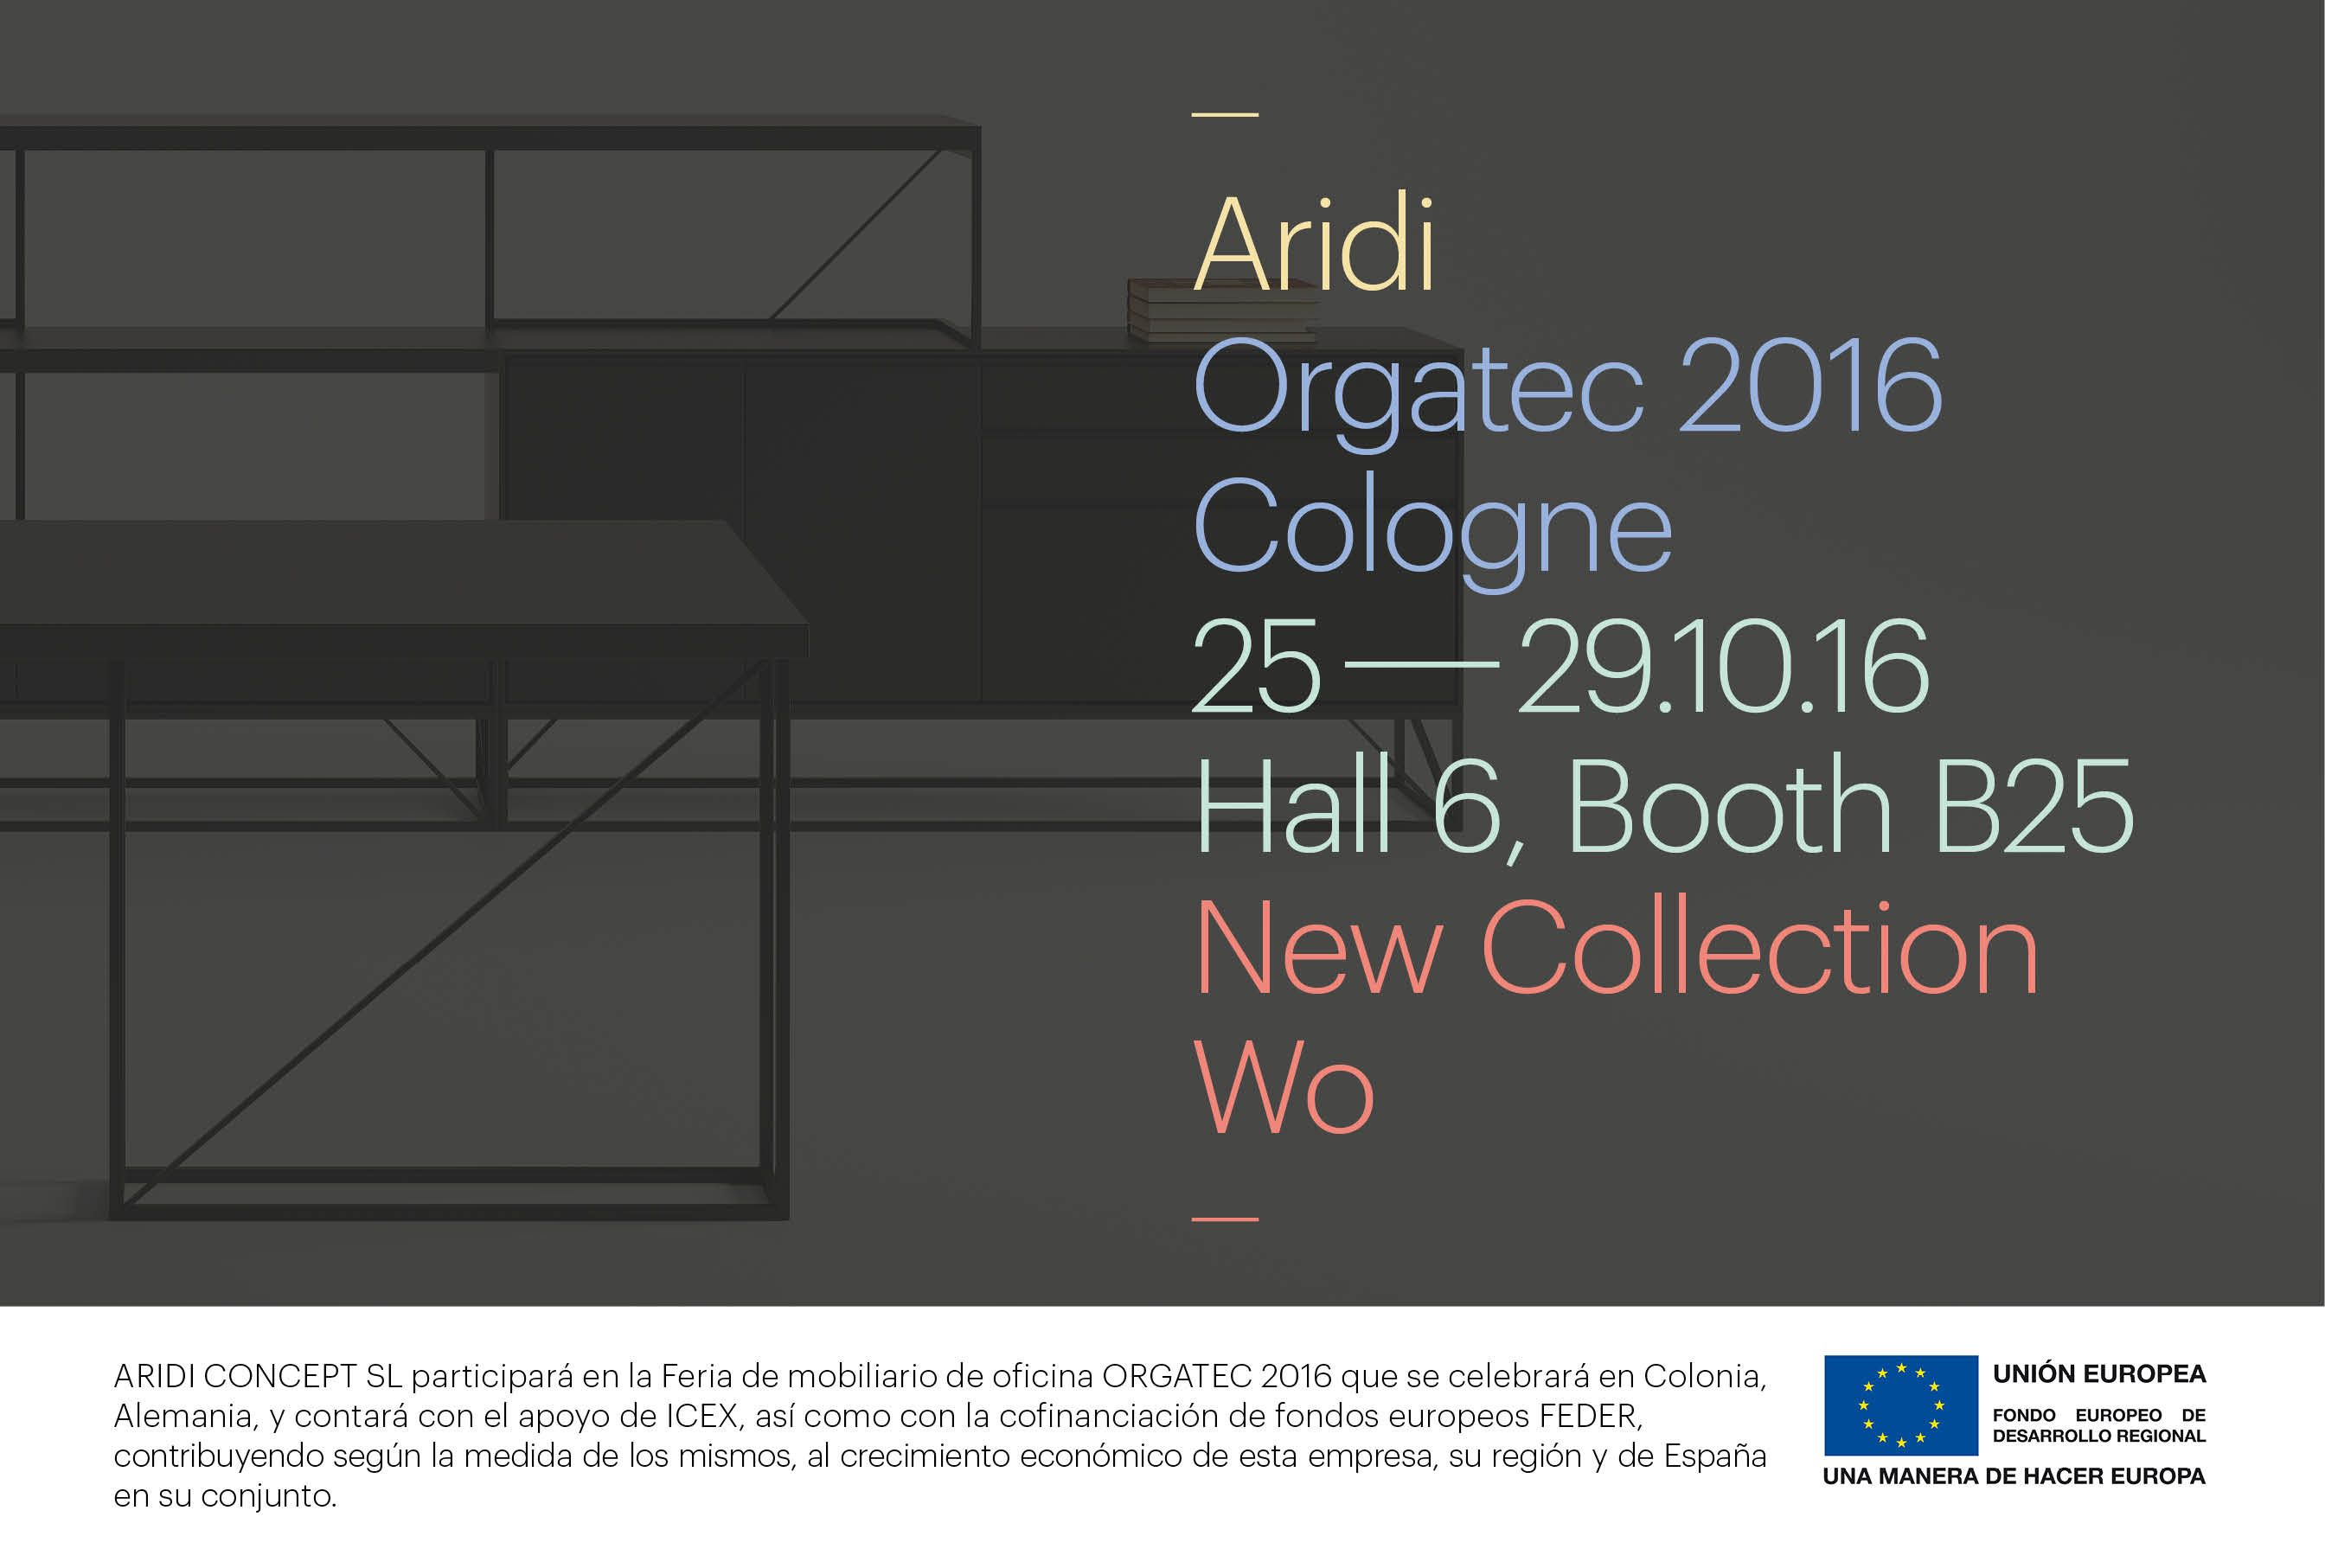 Aridi presents its new WO collection at ORGATEC 2016